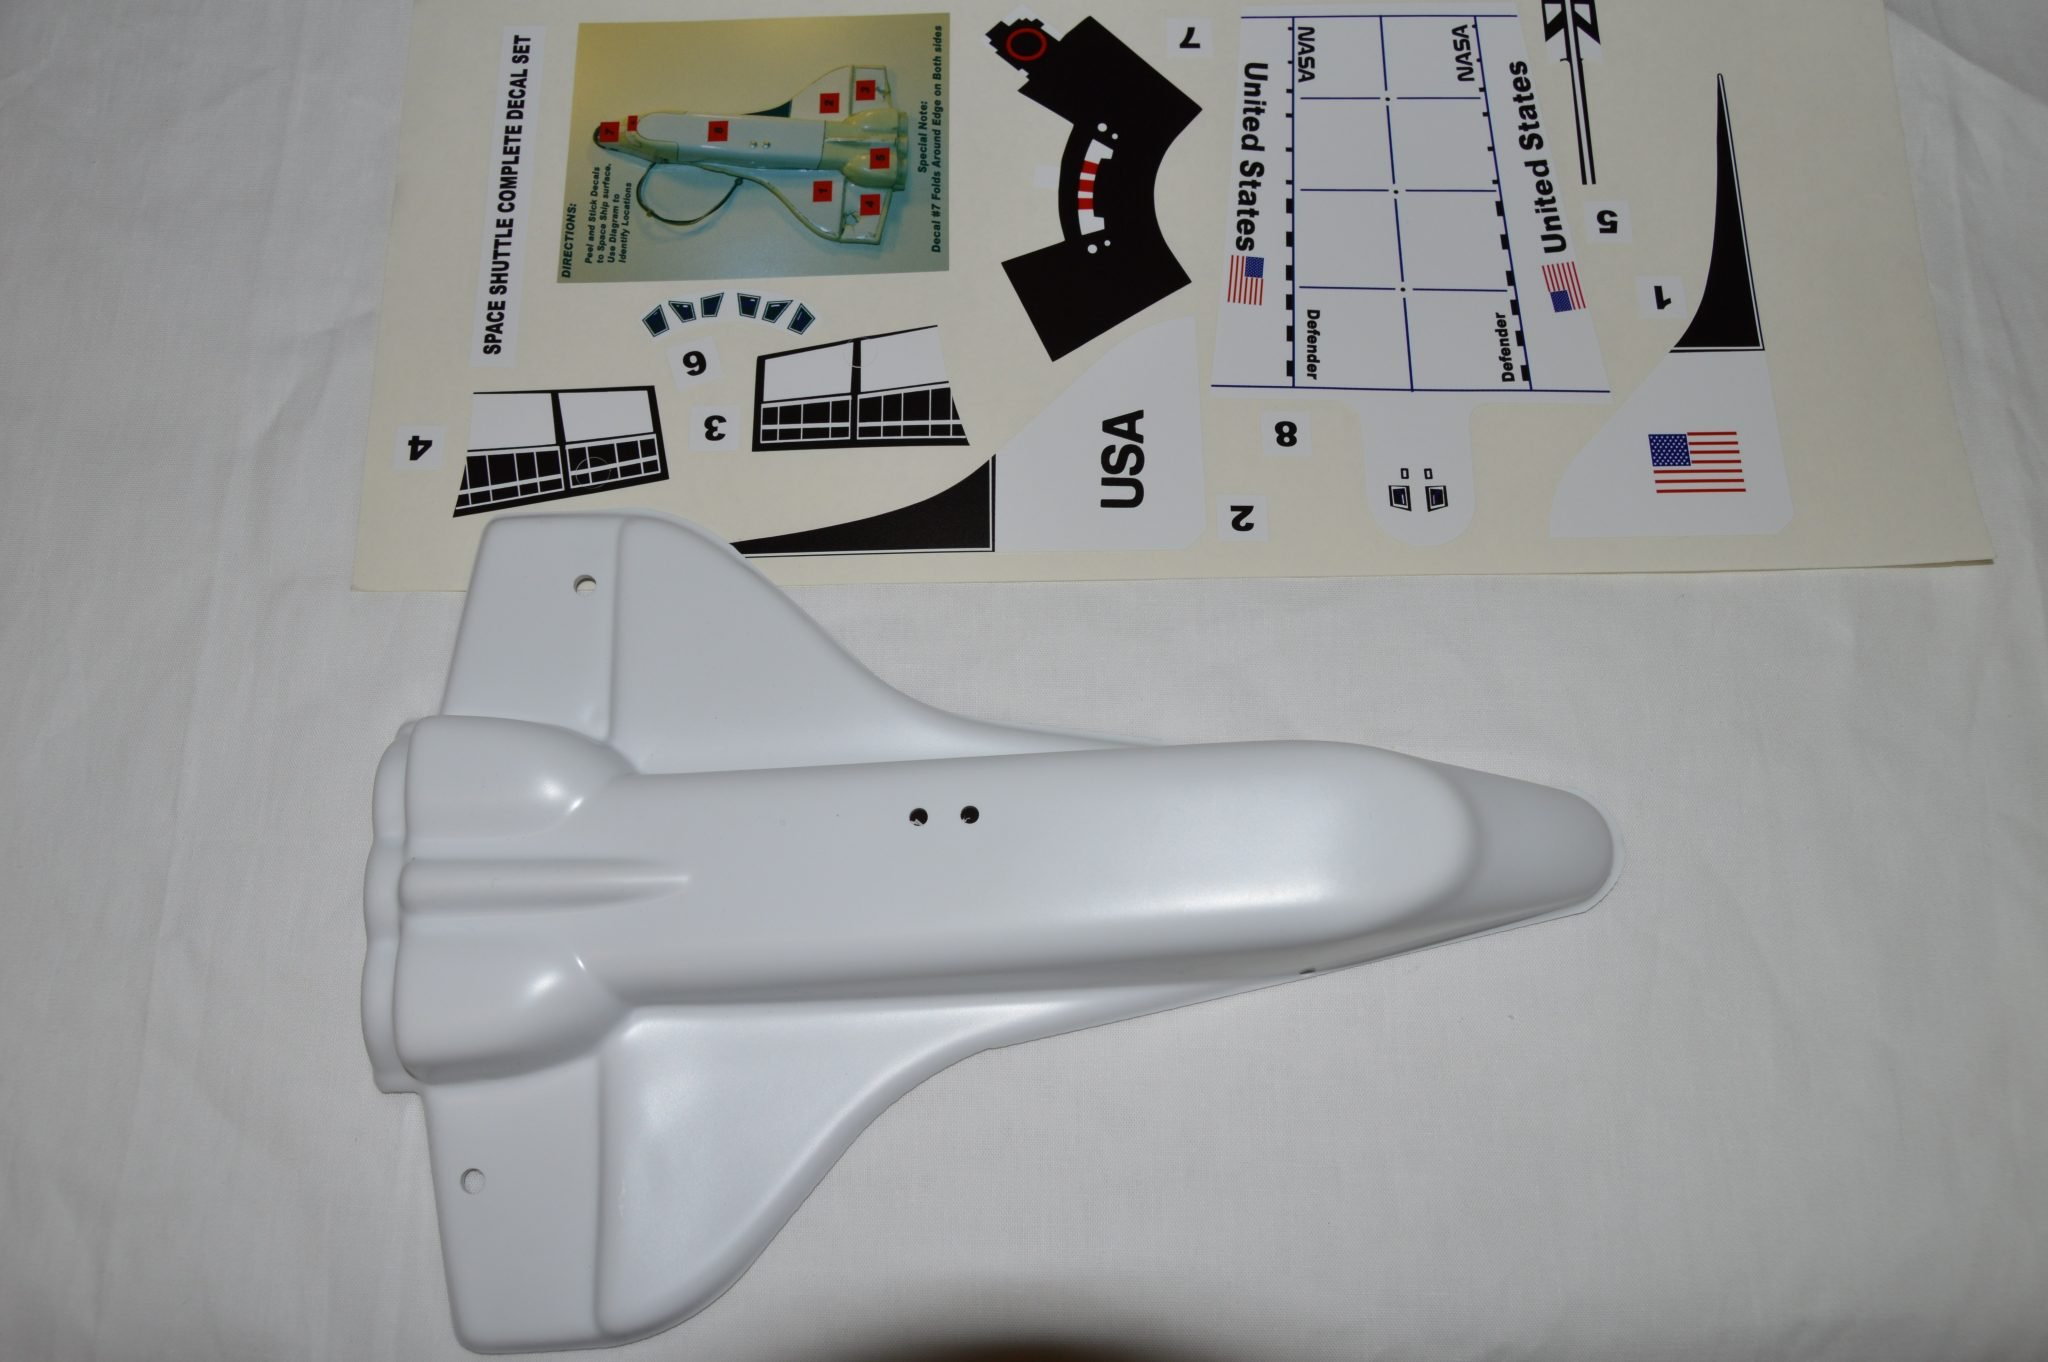 Space Shuttle Model with Decals 03-7924